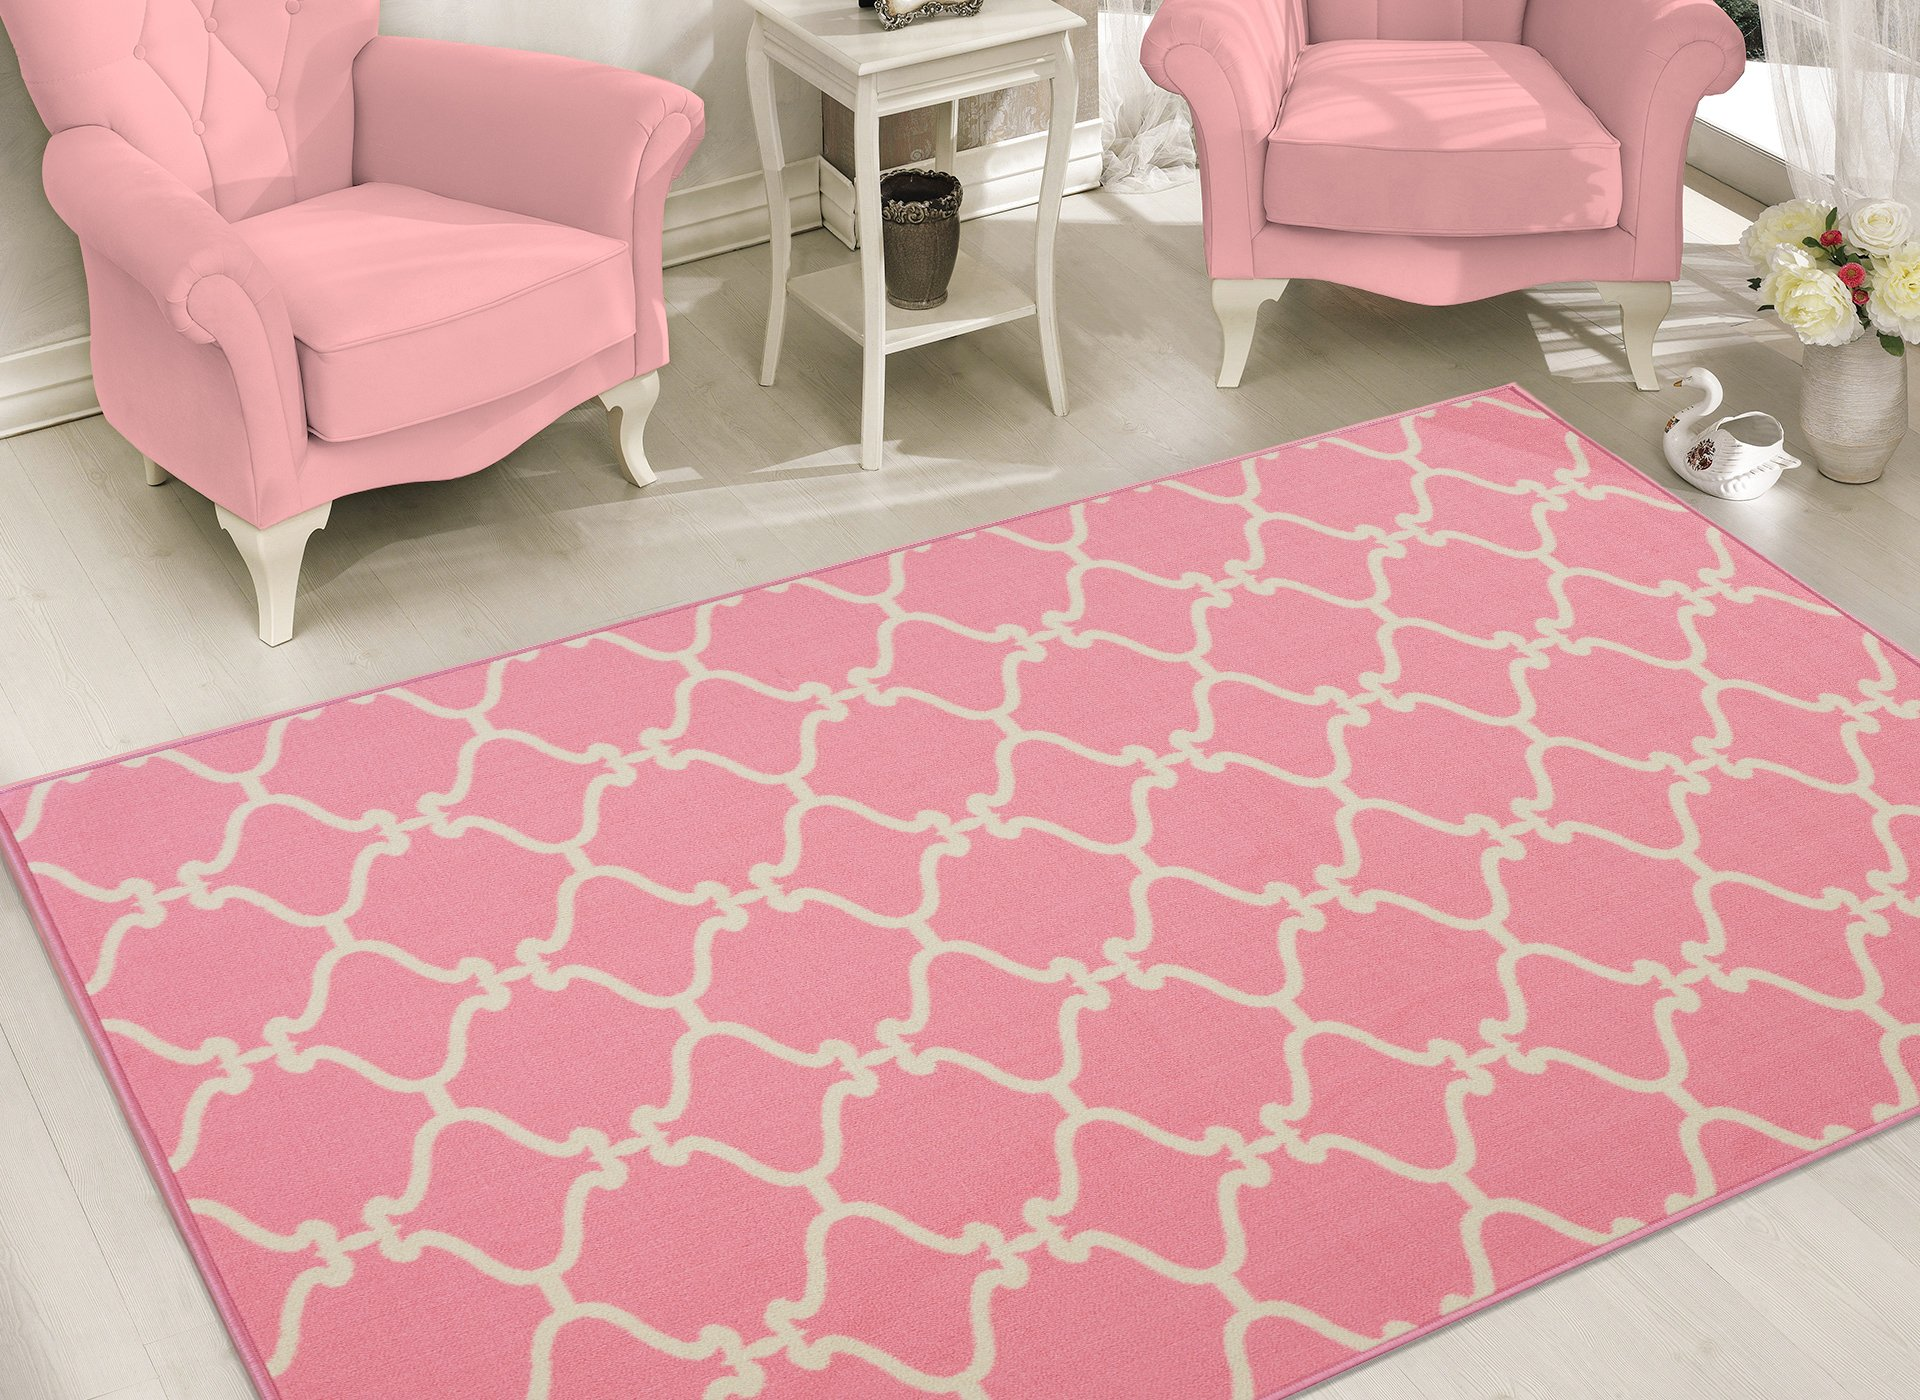 Sweet Home Stores Clifton Collection Moroccan Trellis Design Rubberback Area Rug, Pink